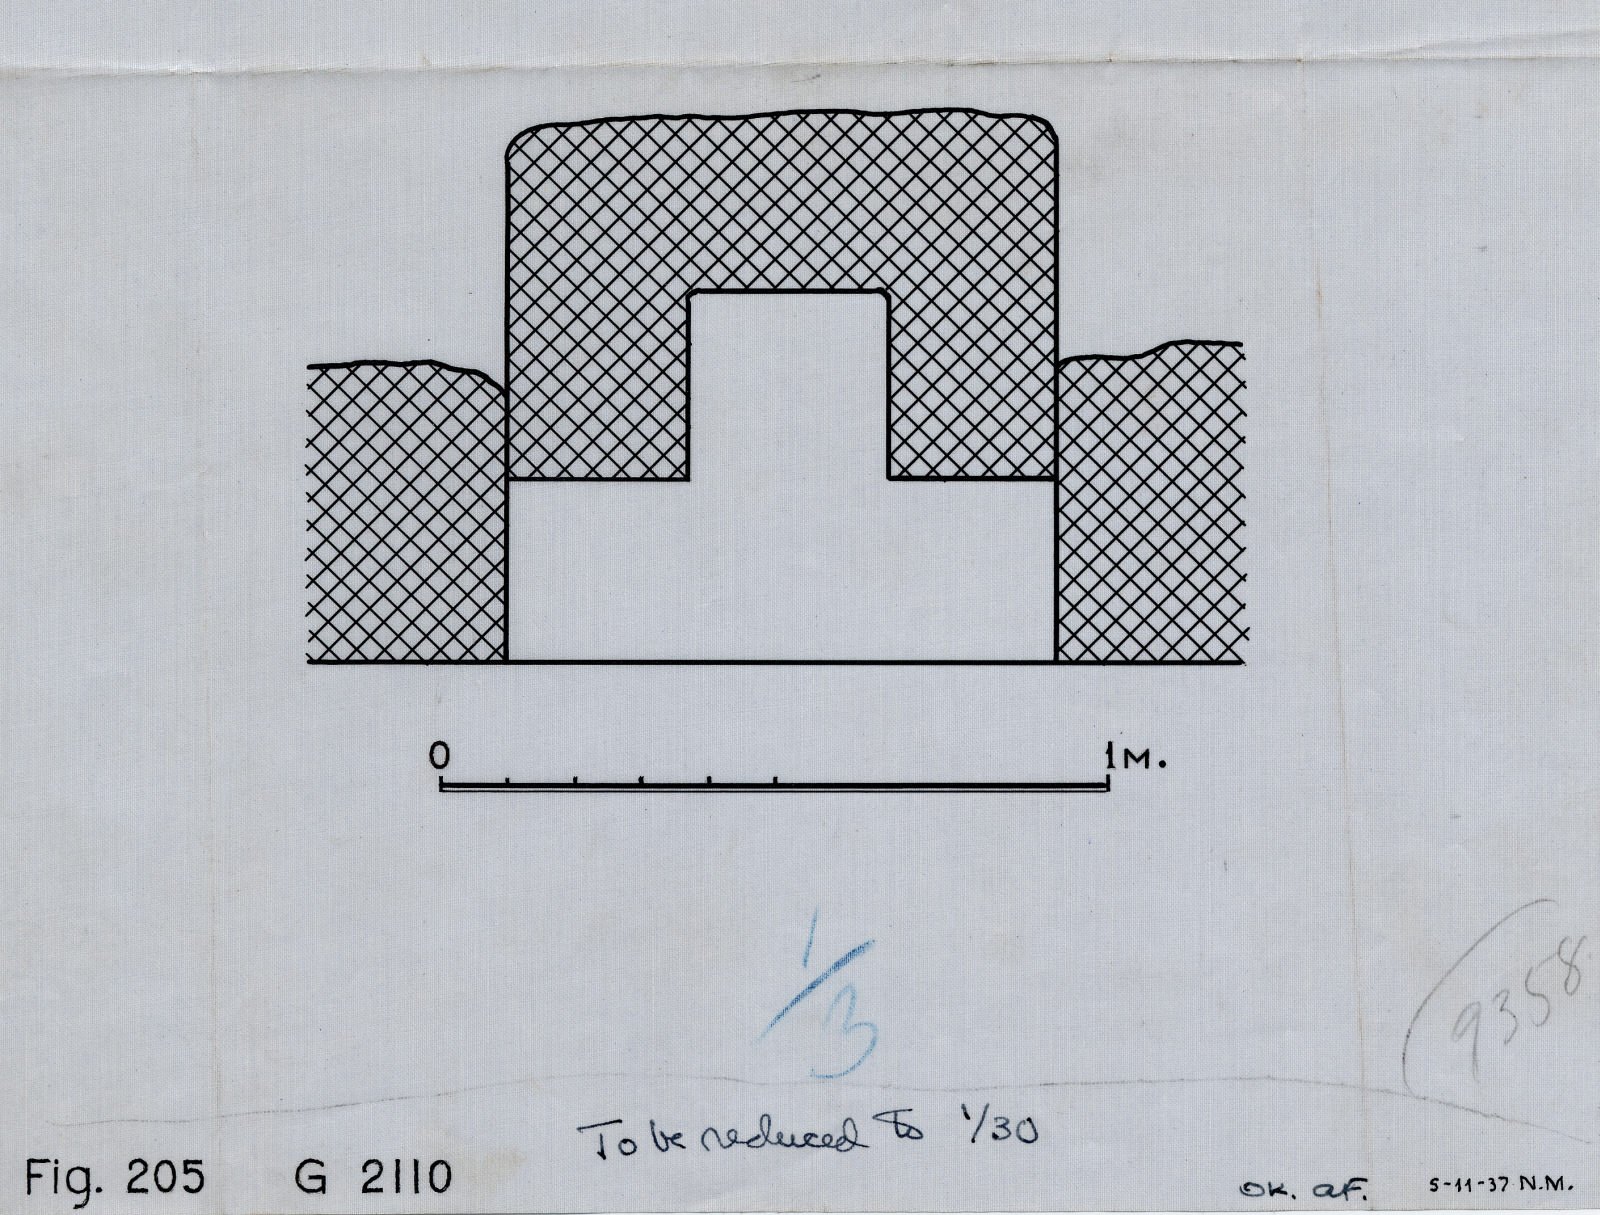 Maps and plans: G 2110, Plan of niche